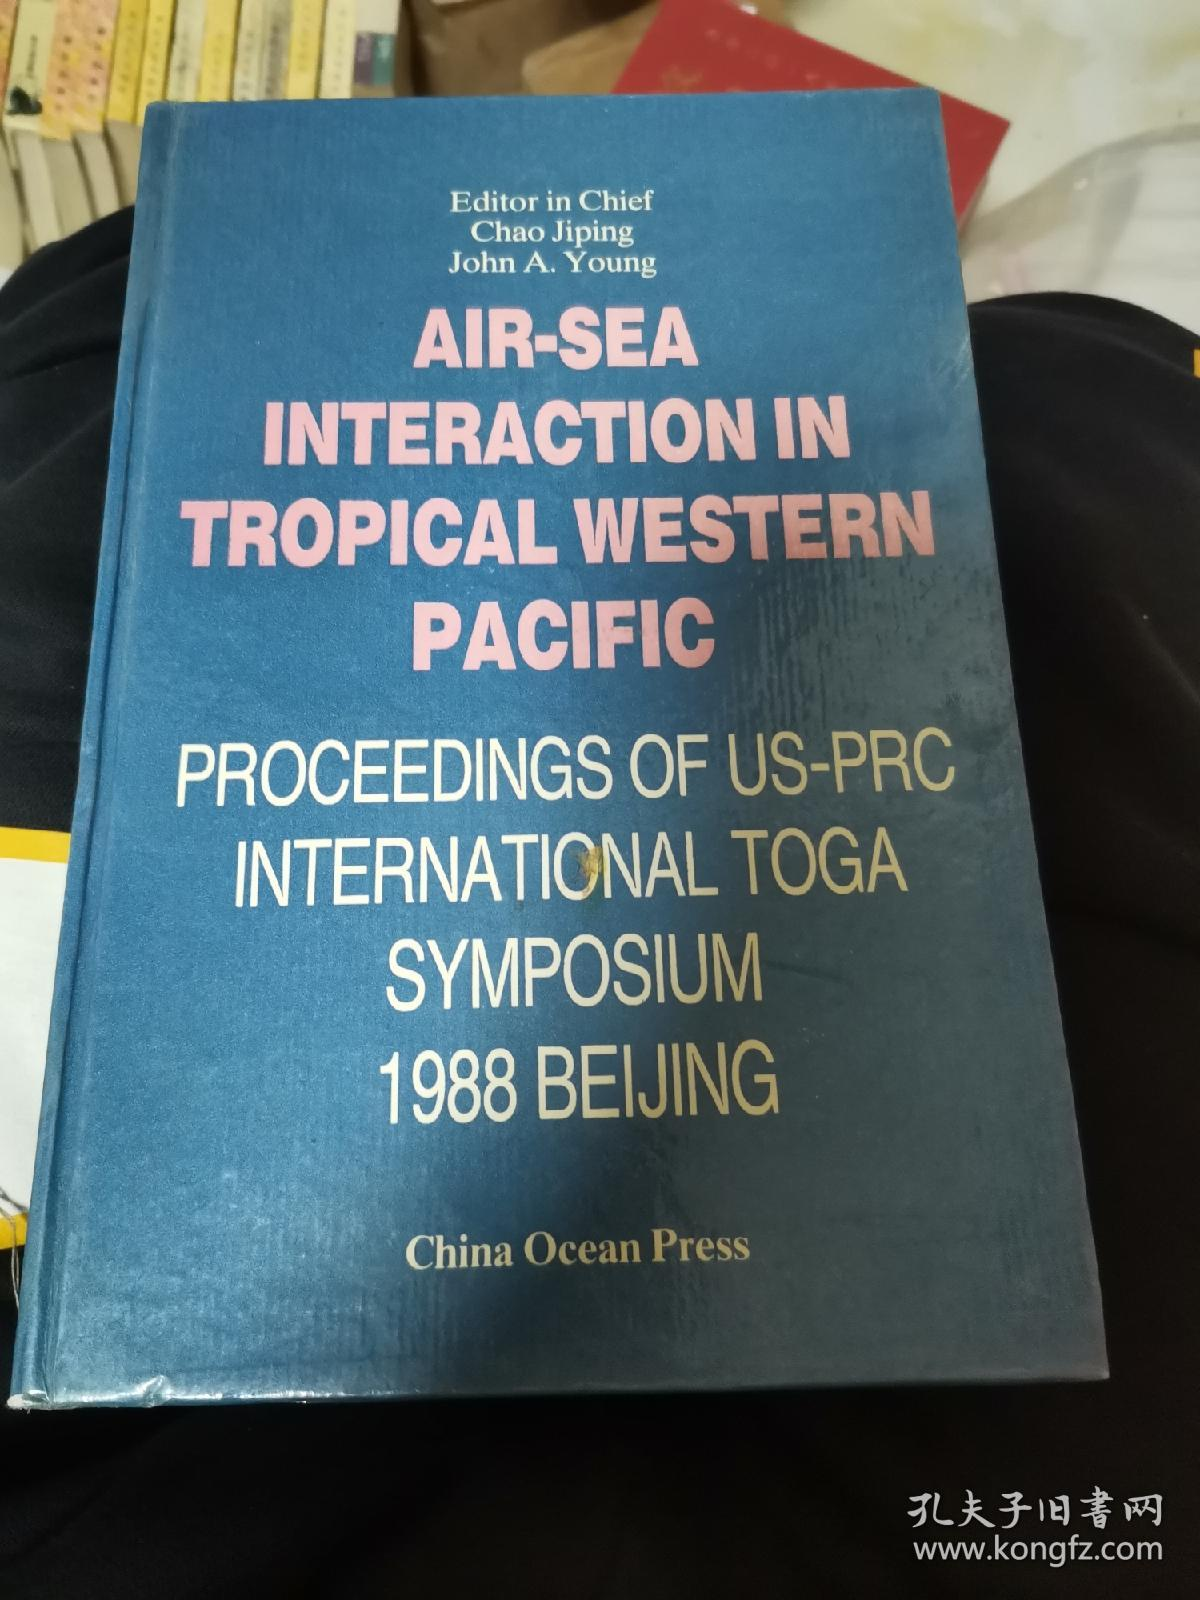 AIR-SEA INTERACTION IN TROPICAL WESTERN PACIFIC